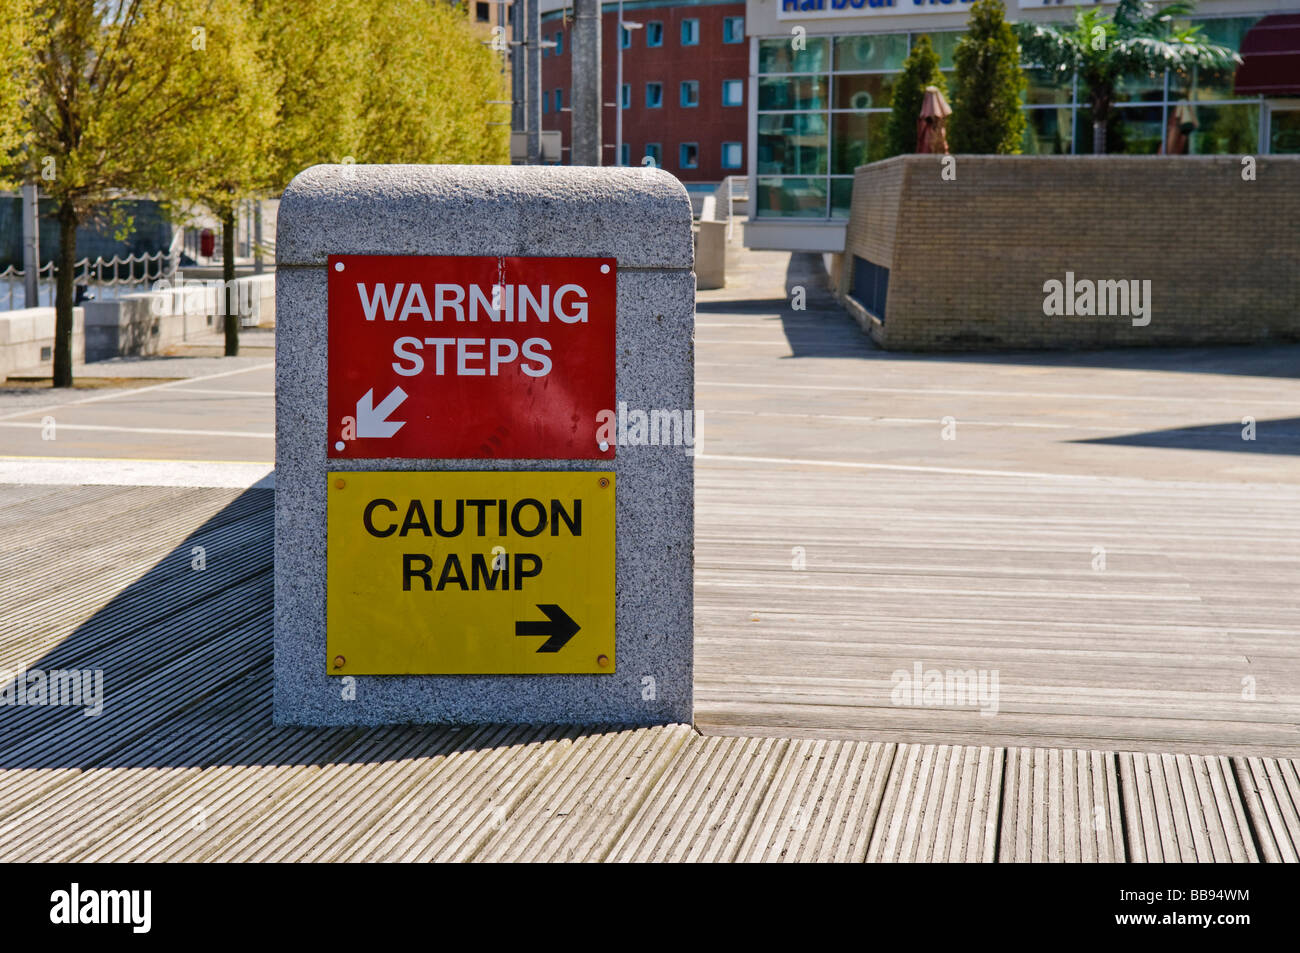 Two warning signs 'Warning steps' and 'Caution ramp' beside each other. Health and Safety gone mad. - Stock Image